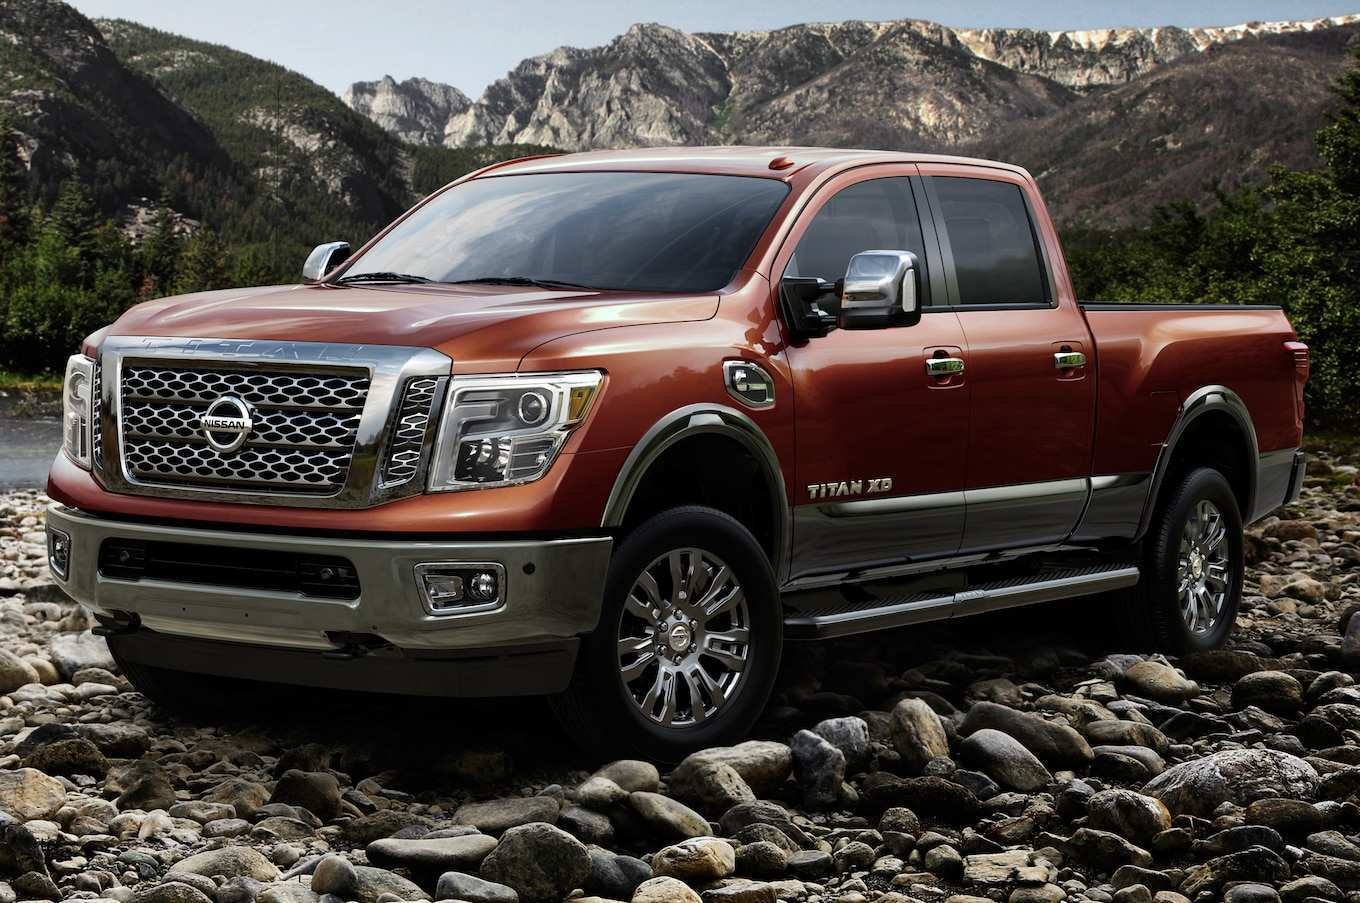 45 Best Review 2016 Nissan Titan XD Exterior with 2016 Nissan Titan XD